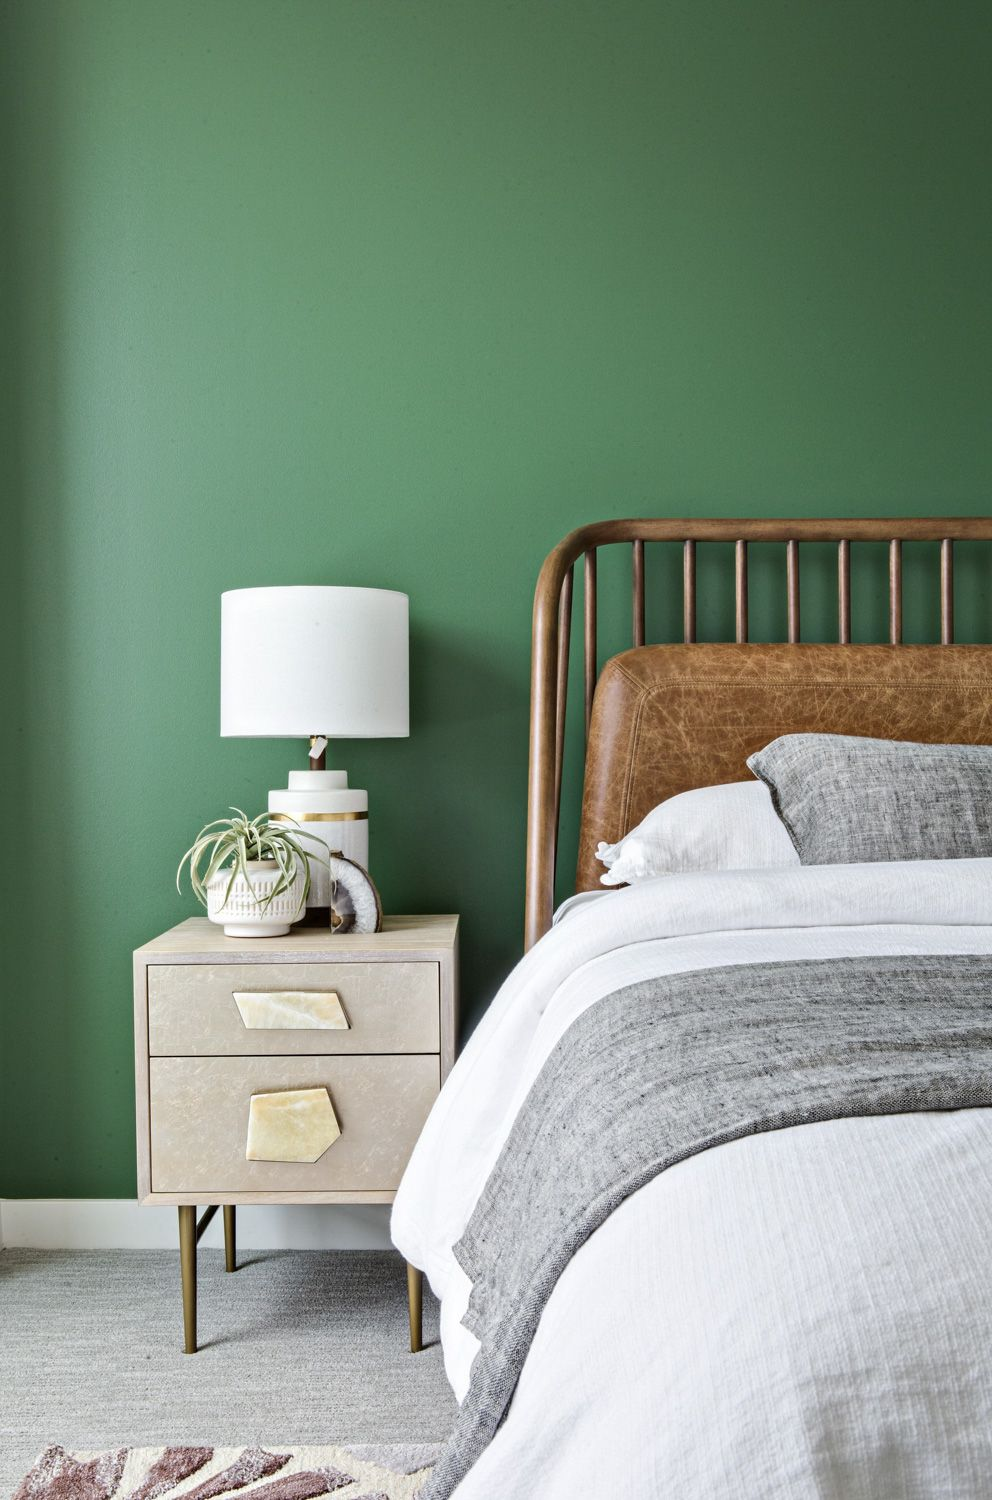 Tour A Dtla Apartment That Perfects Midcentury Decor Green Bedroom Walls Home Decor Bedroom Green Bedroom Paint